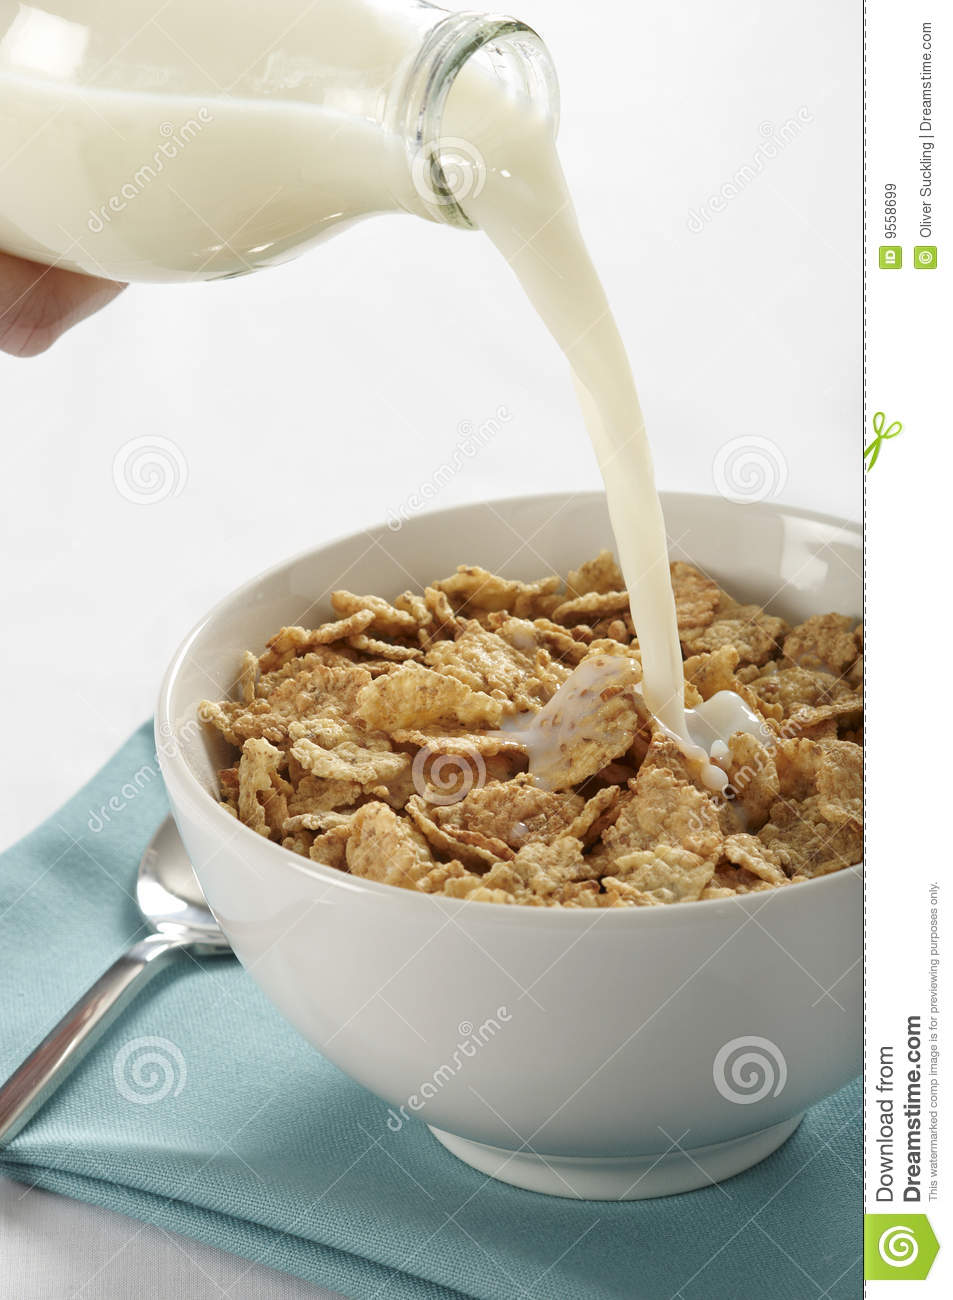 ... view of milk being poured from a bottle into a bowl of cereal flakes